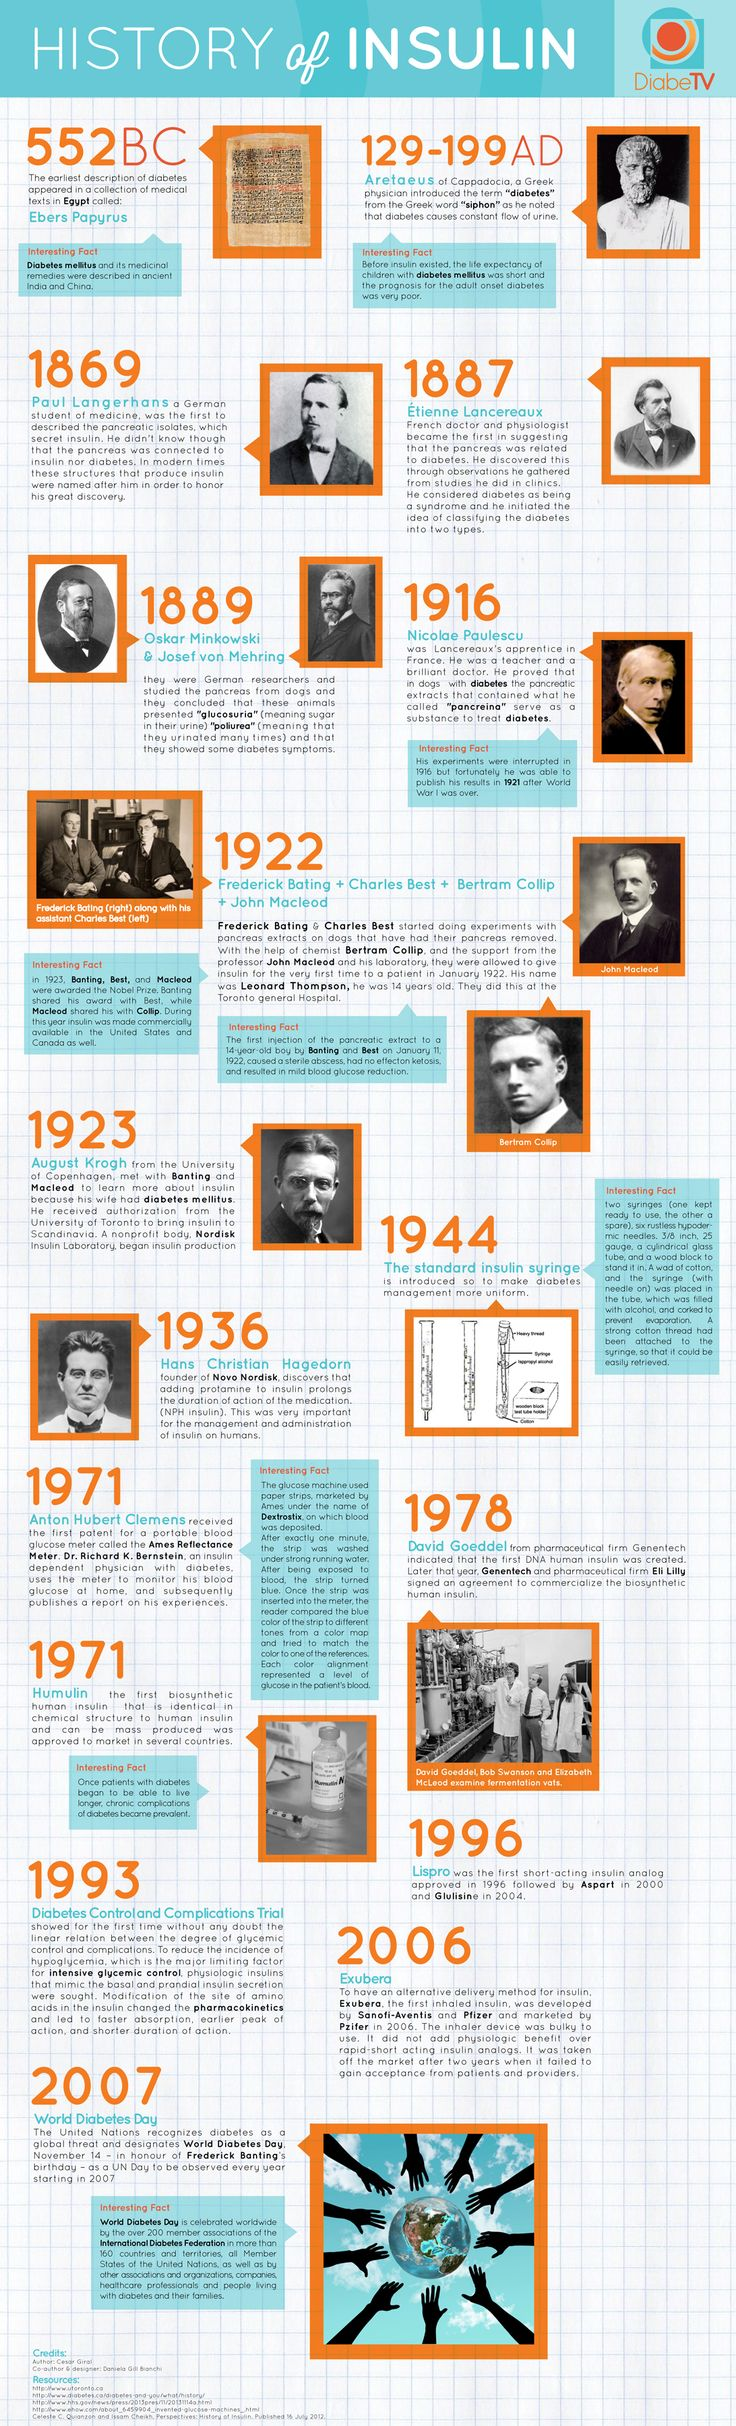 Who discovered insulin?